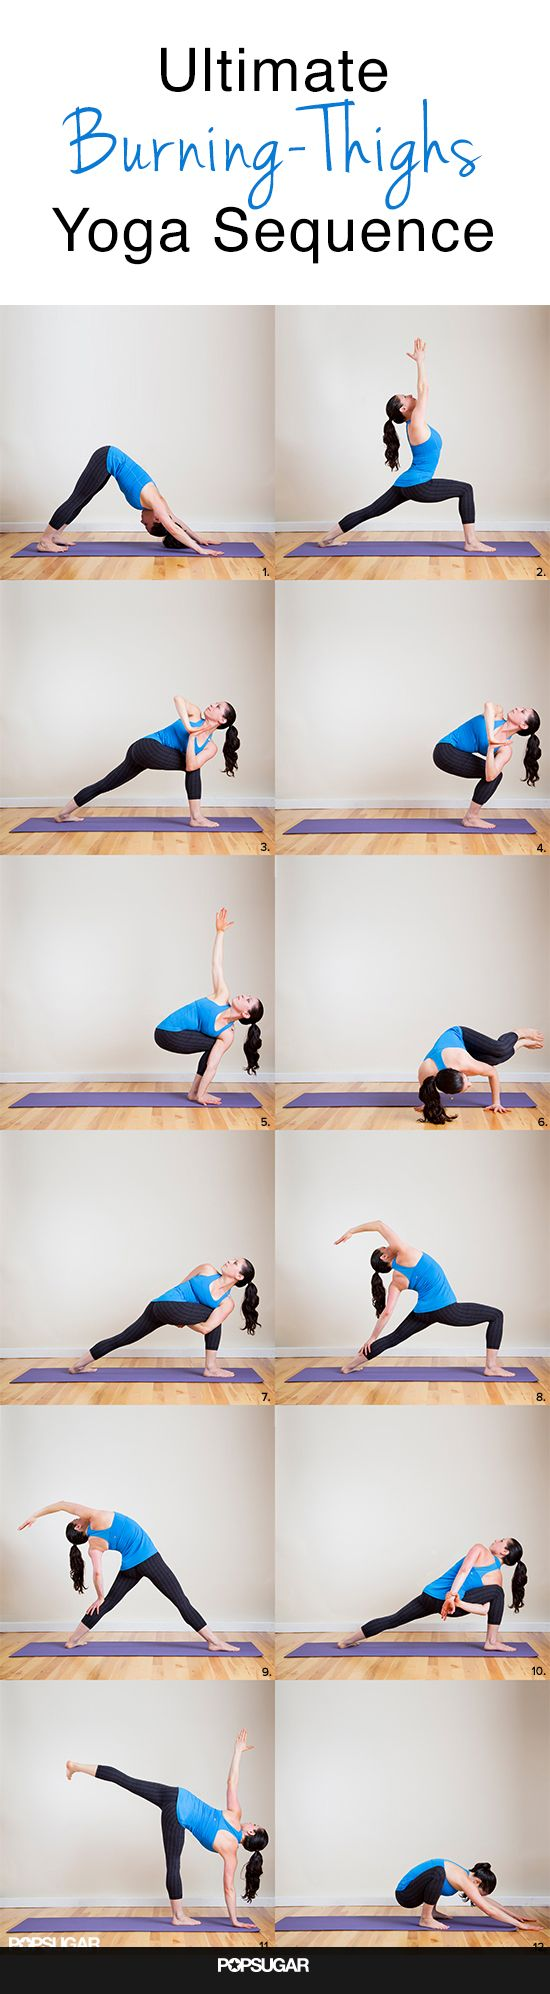 """Burning Thighs Yoga Sequence: Your Shorts Will Say, """"More Please!"""""""